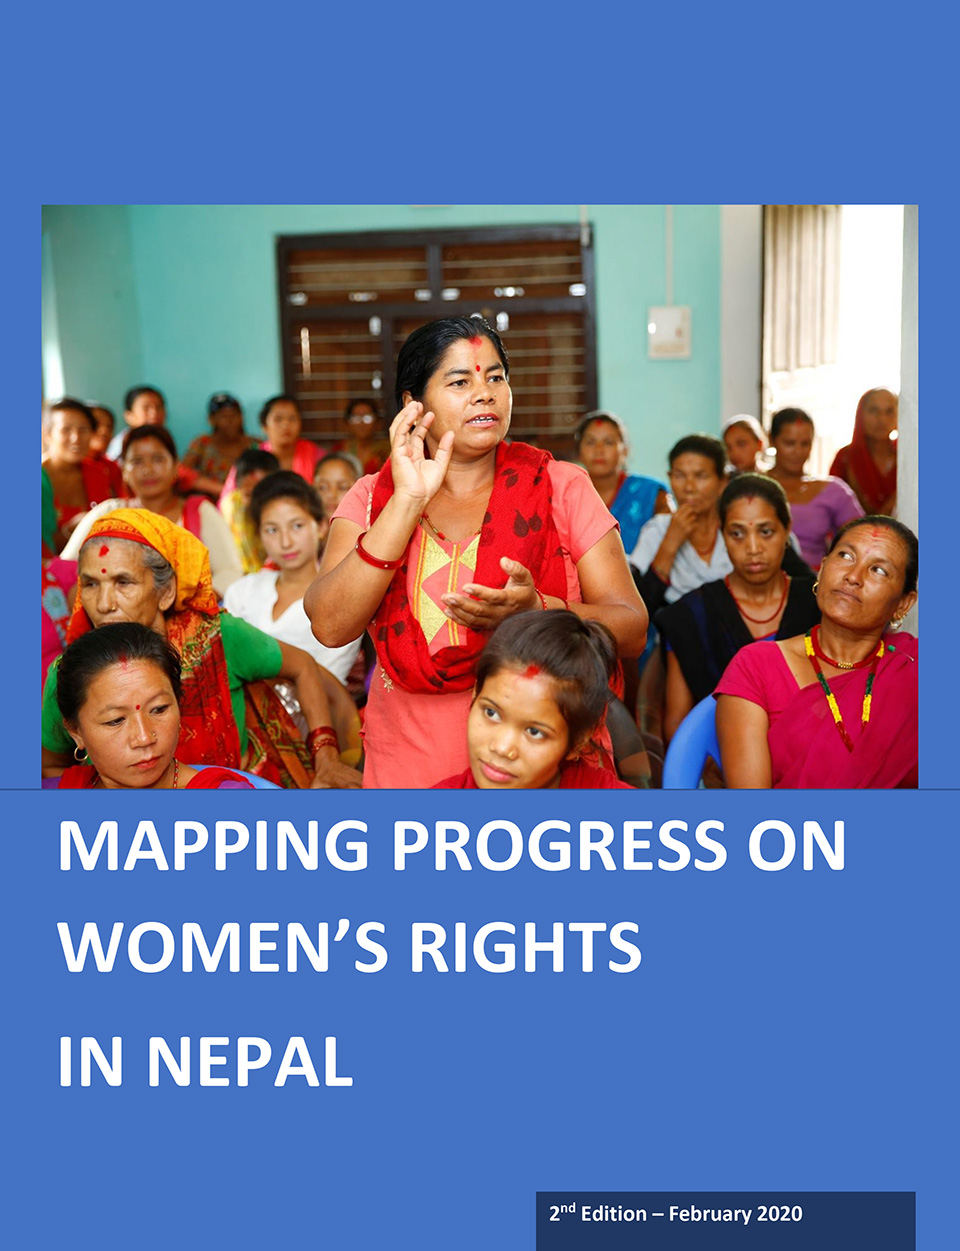 Mapping progress on women's rights in Nepal